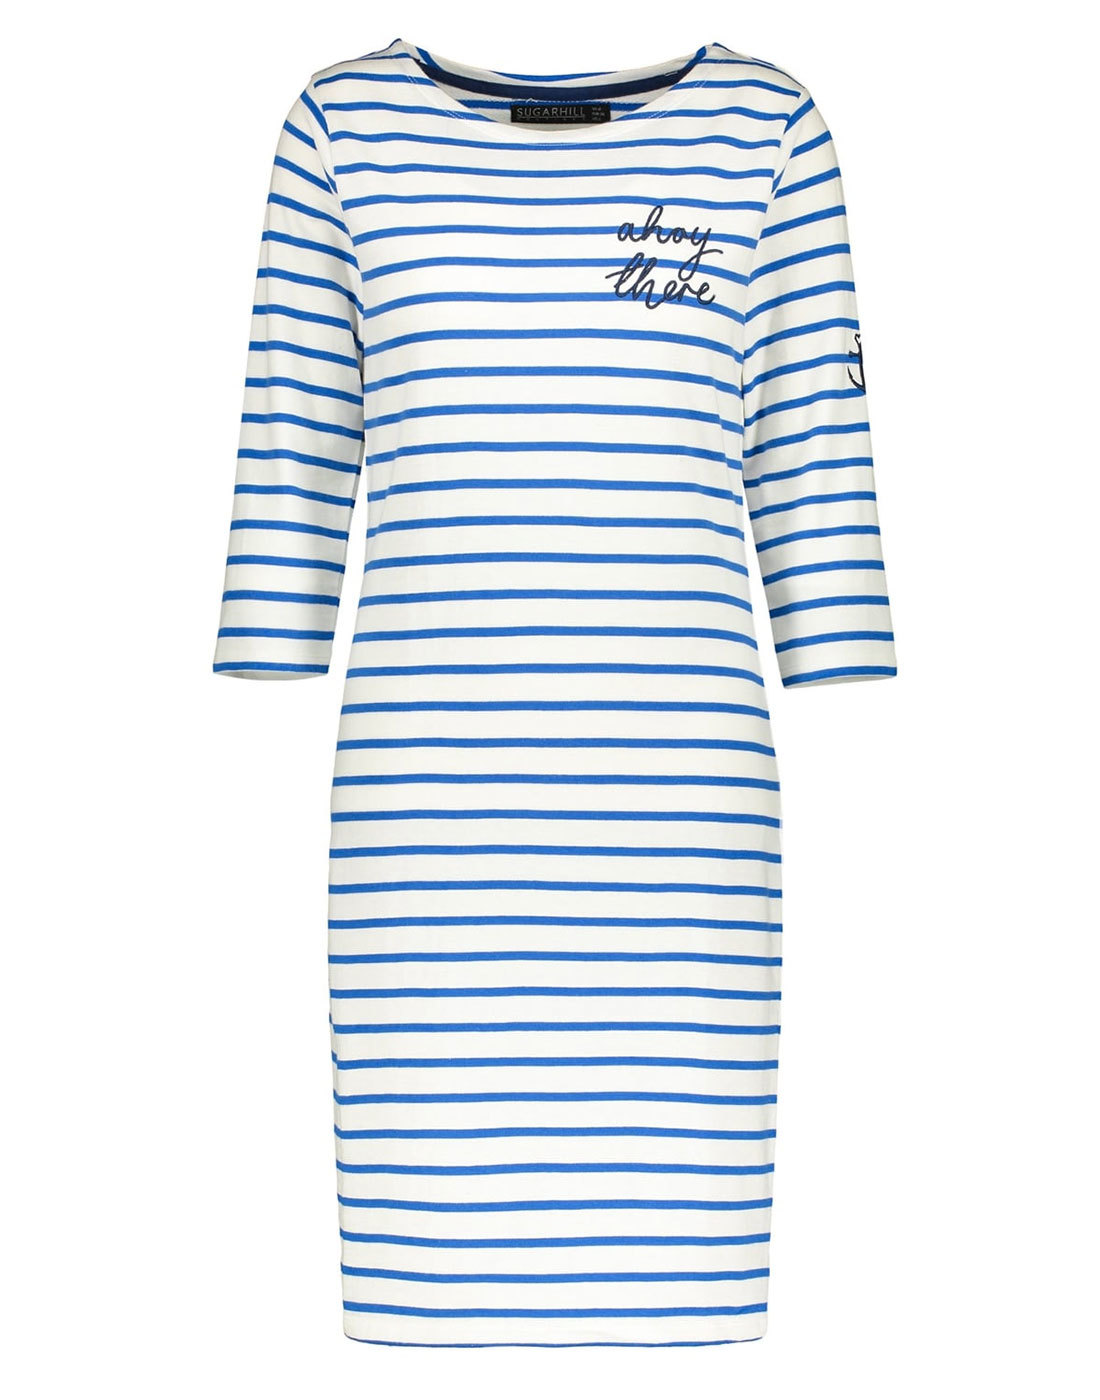 Brighton Ahoy There SUGARHILL BOUTIQUE Retro Dress